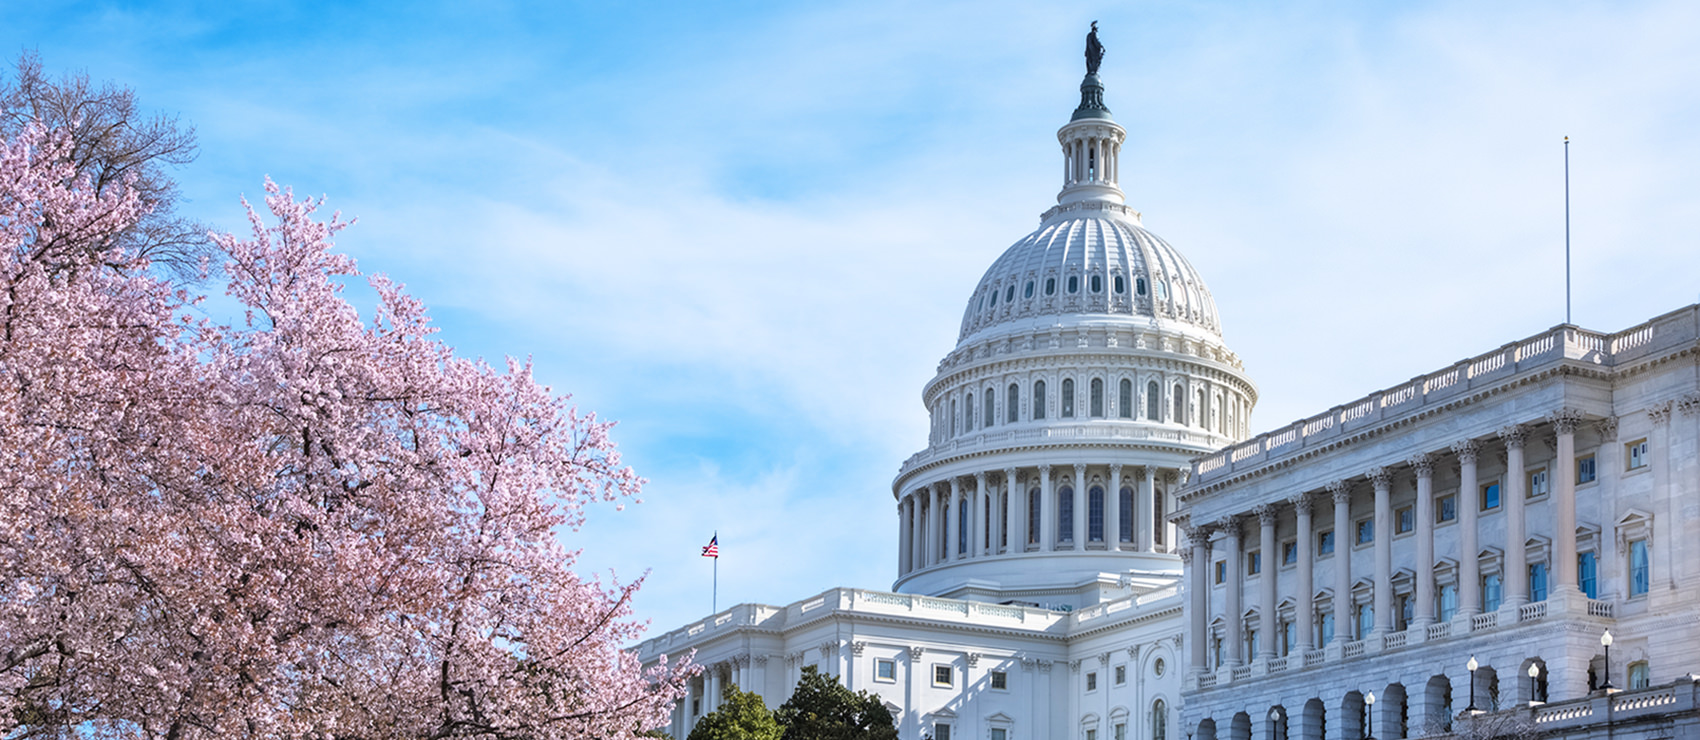 A view of the west facade of the United States Capitol in Washington DC.  The cherry blossoms are in full bloom under a blue sky with swirling white clouds.